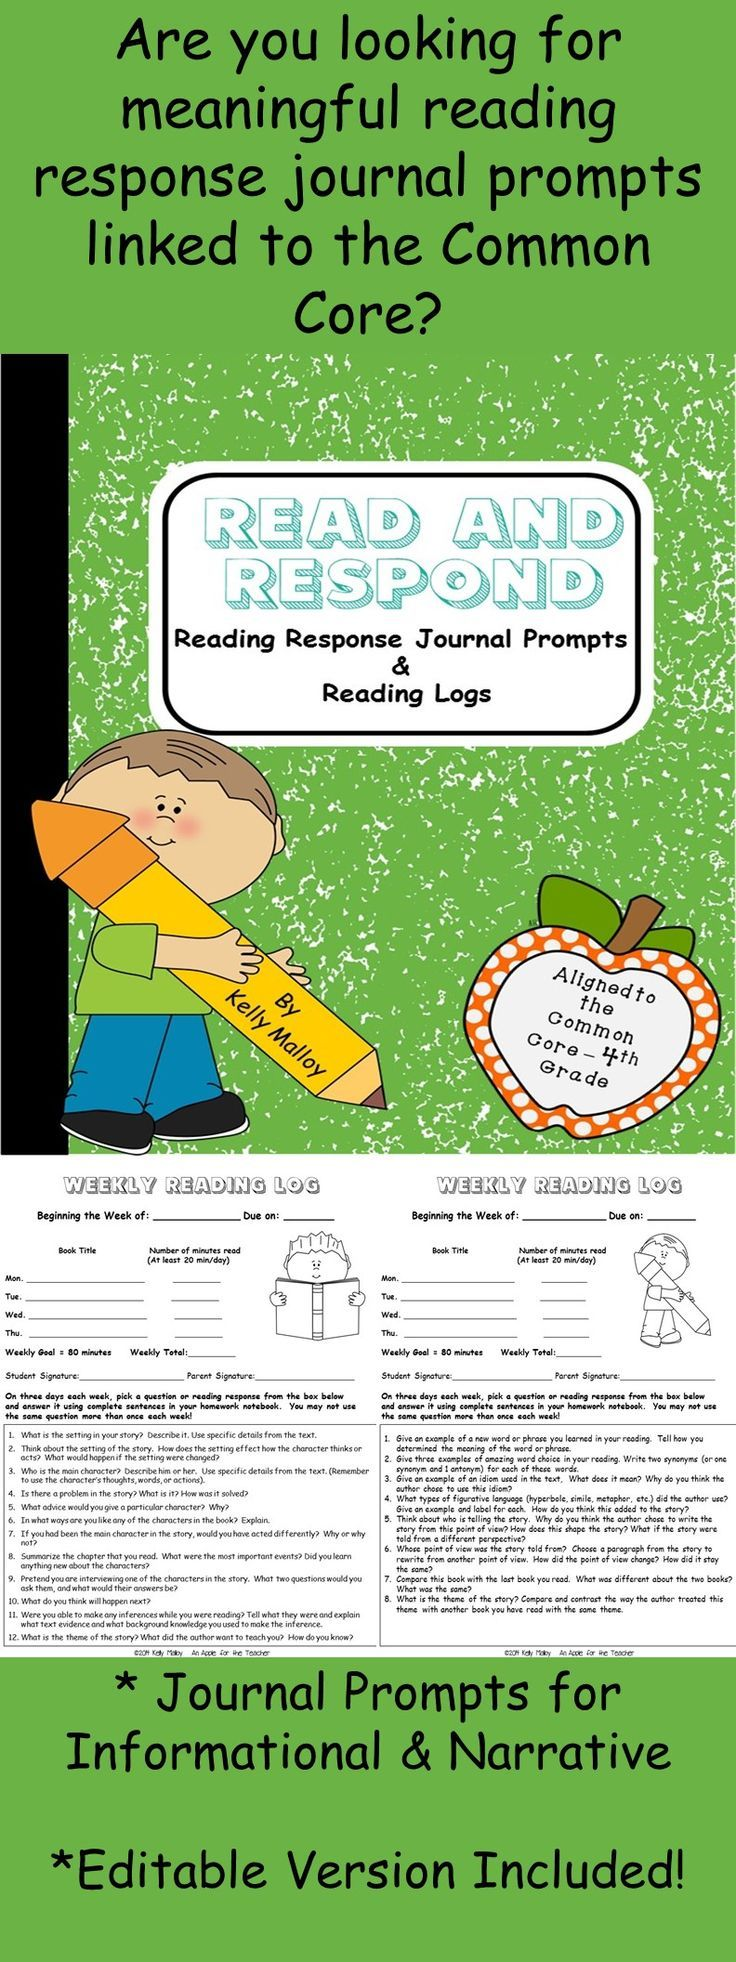 Reading Response Journal Prompts aligned to 4th grade common core